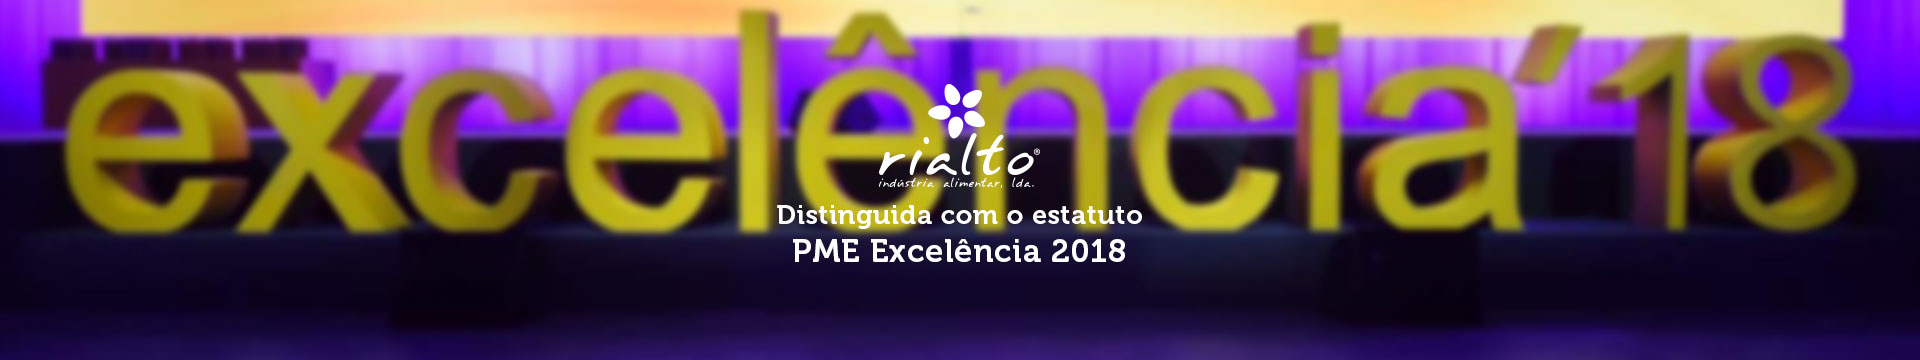 Rialto distinguished PME Excellence 2018